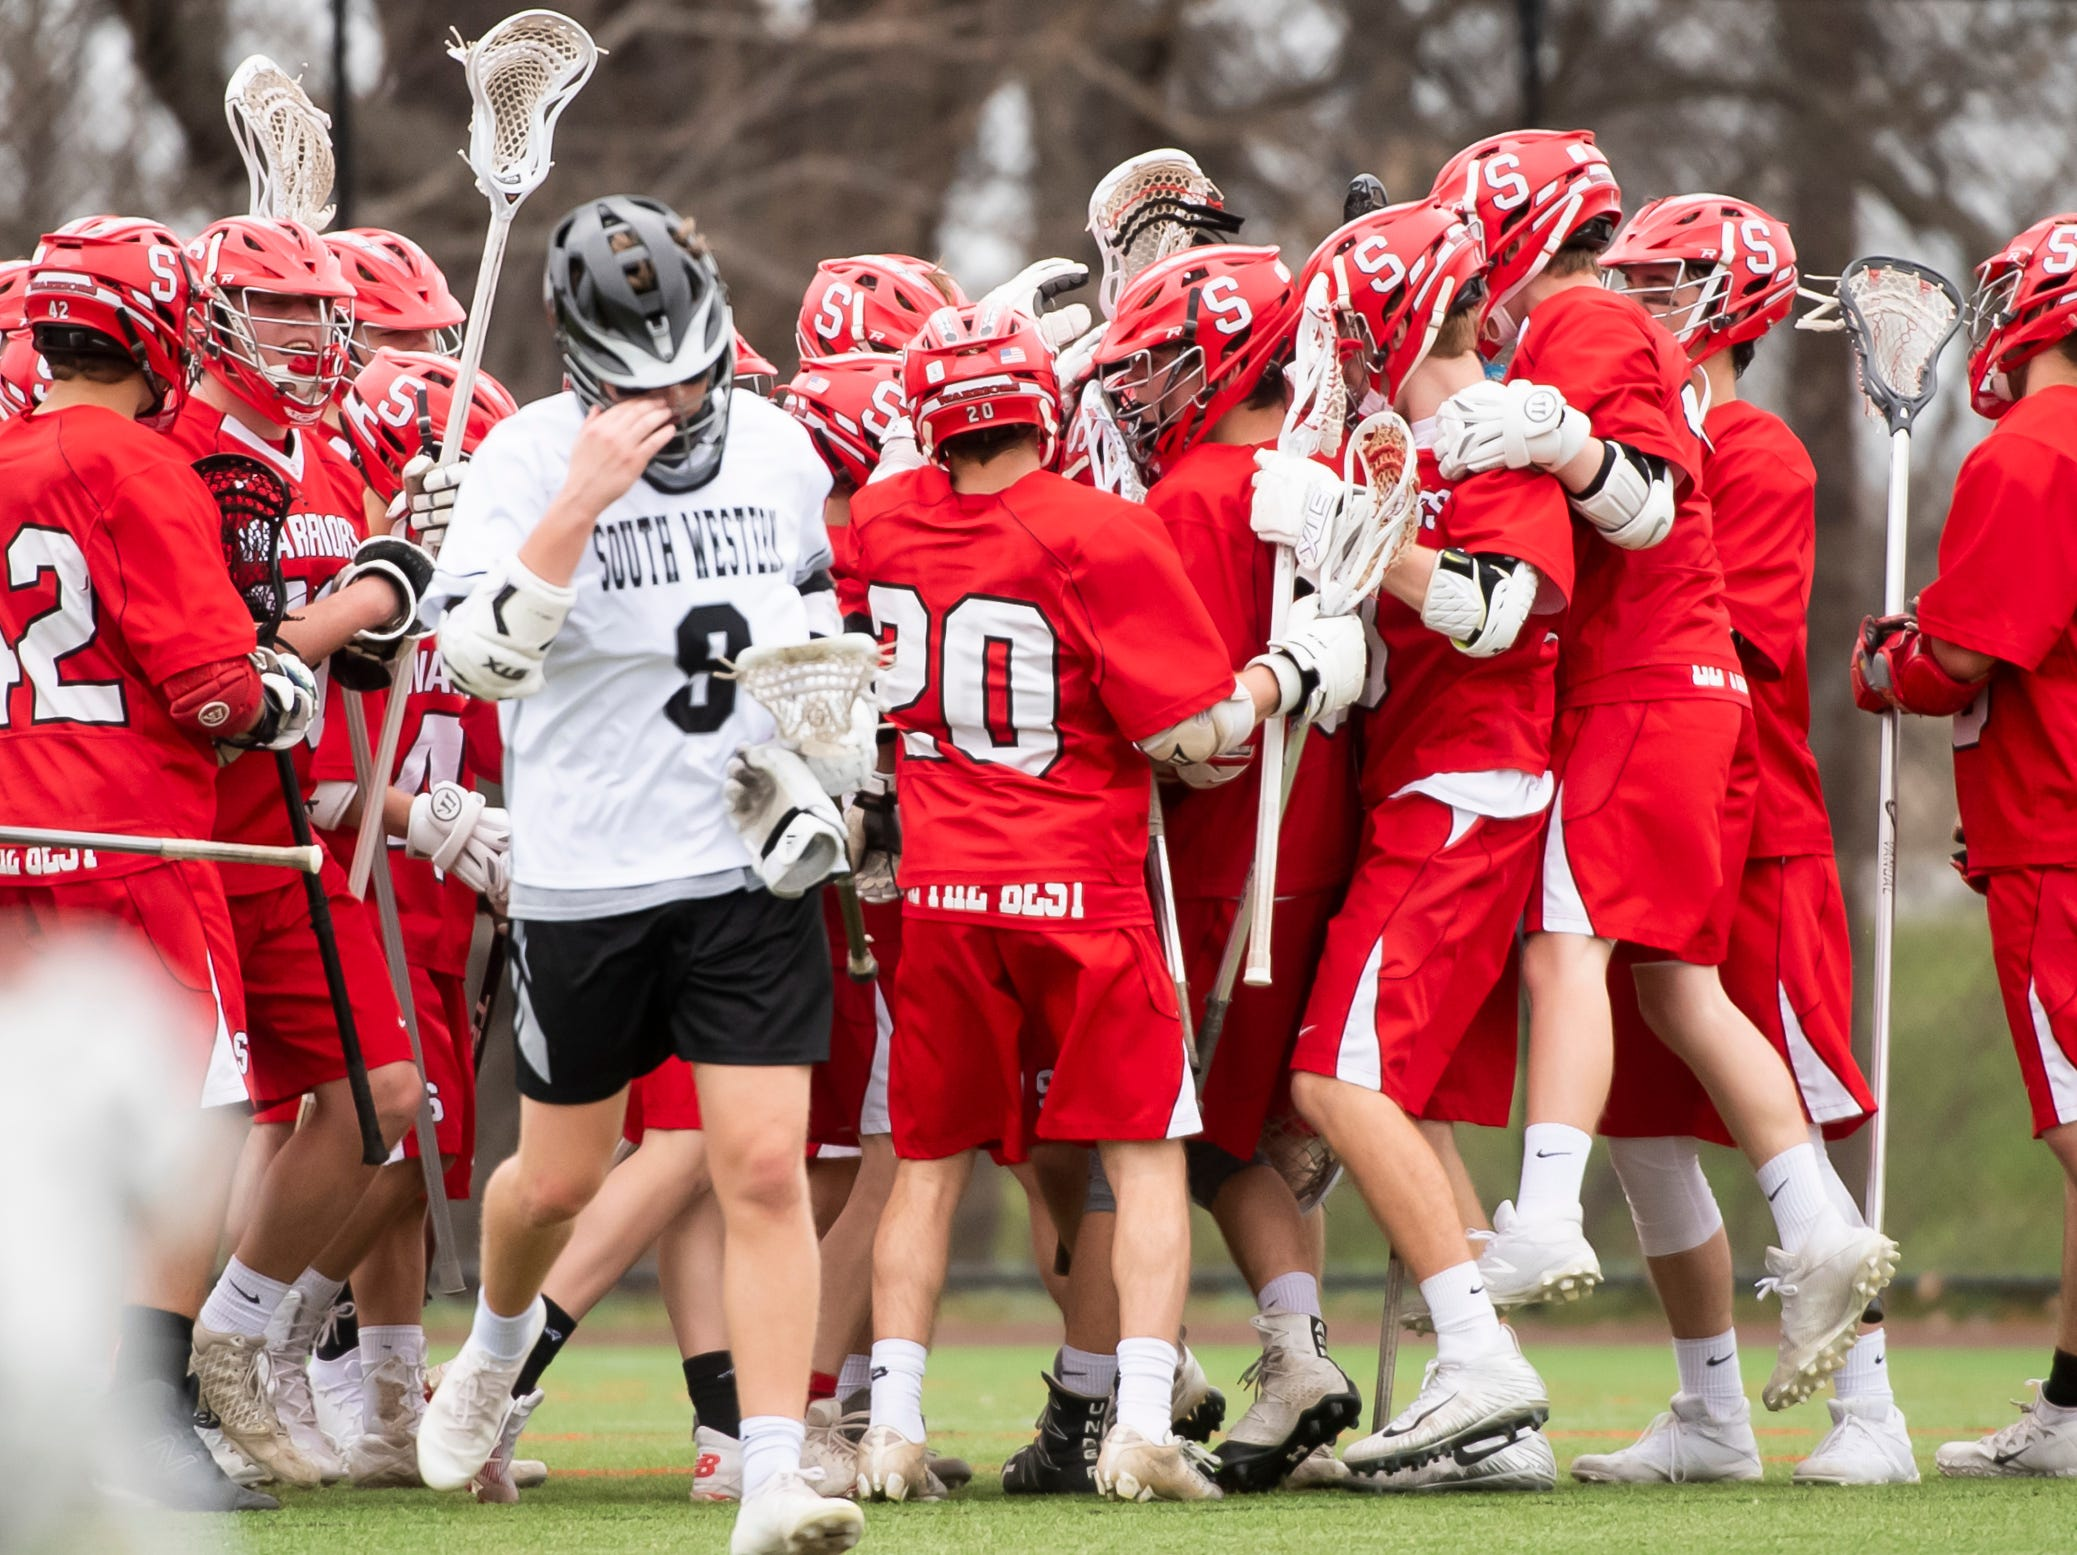 The Susquehannock Warriors celebrate their 14-3 victory over South Western in Hanover on Monday, April 8, 2019.